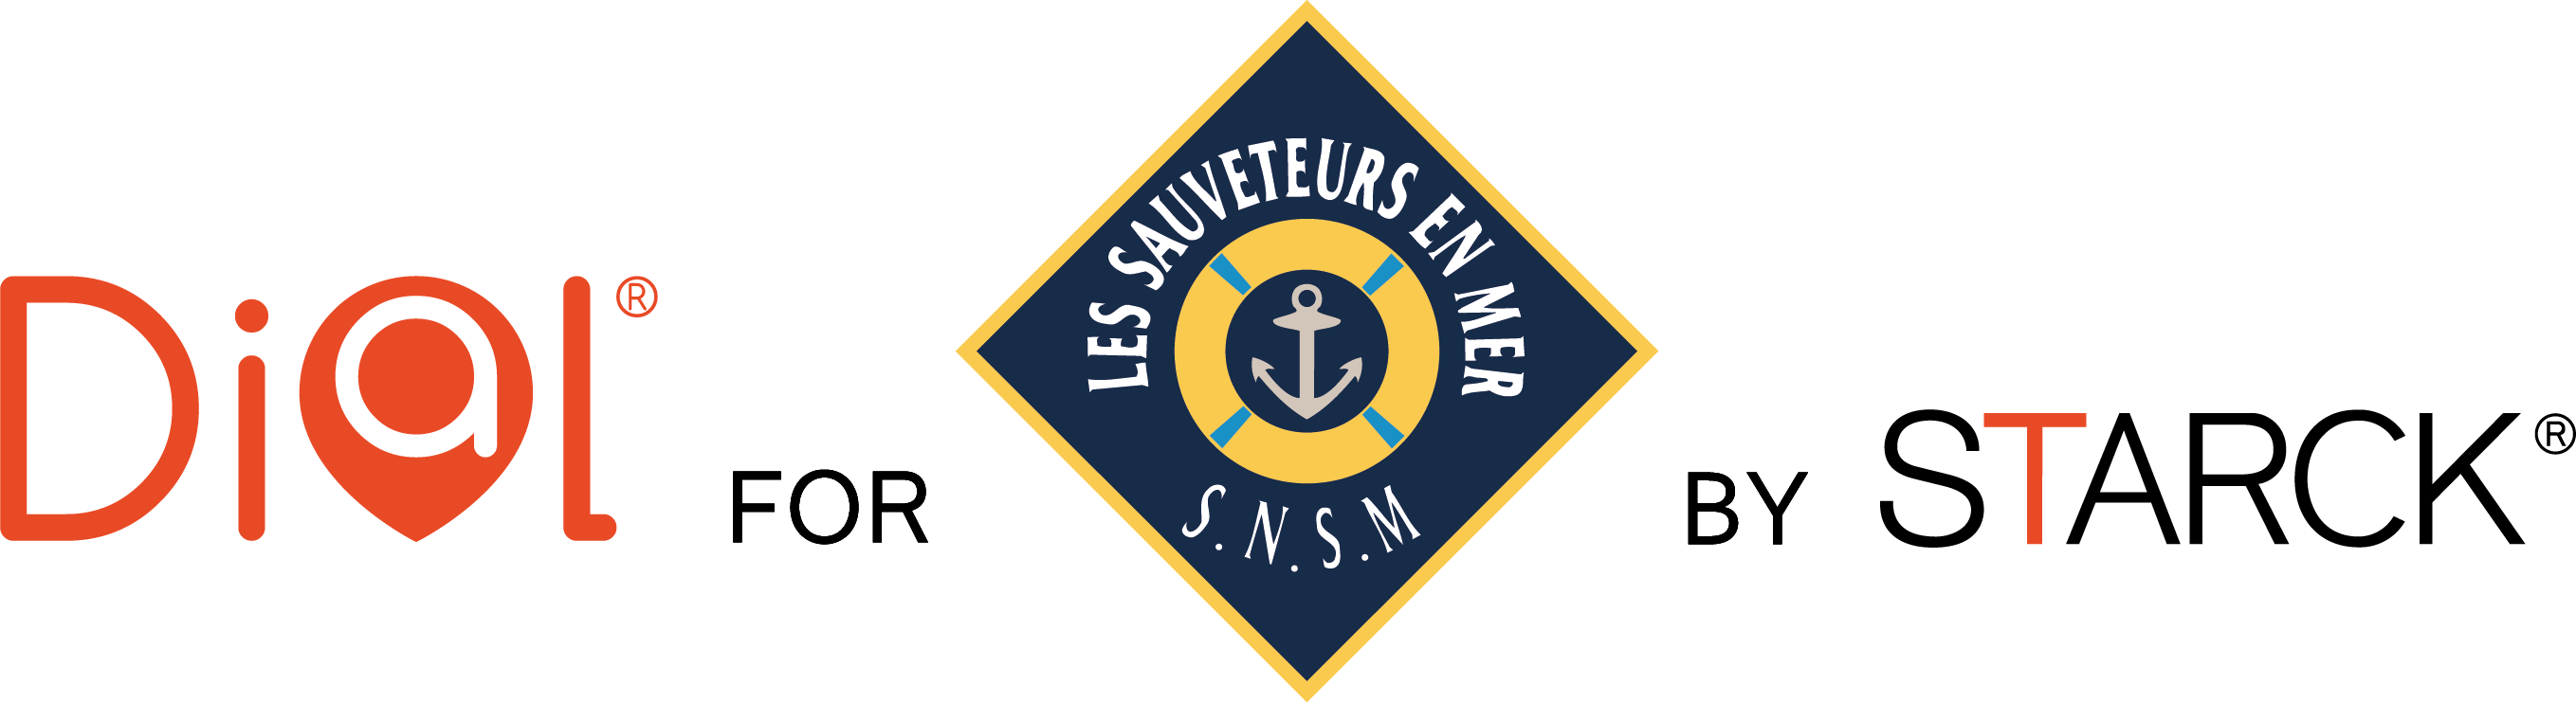 Patenaires DIAL for SNSM by Starck.png